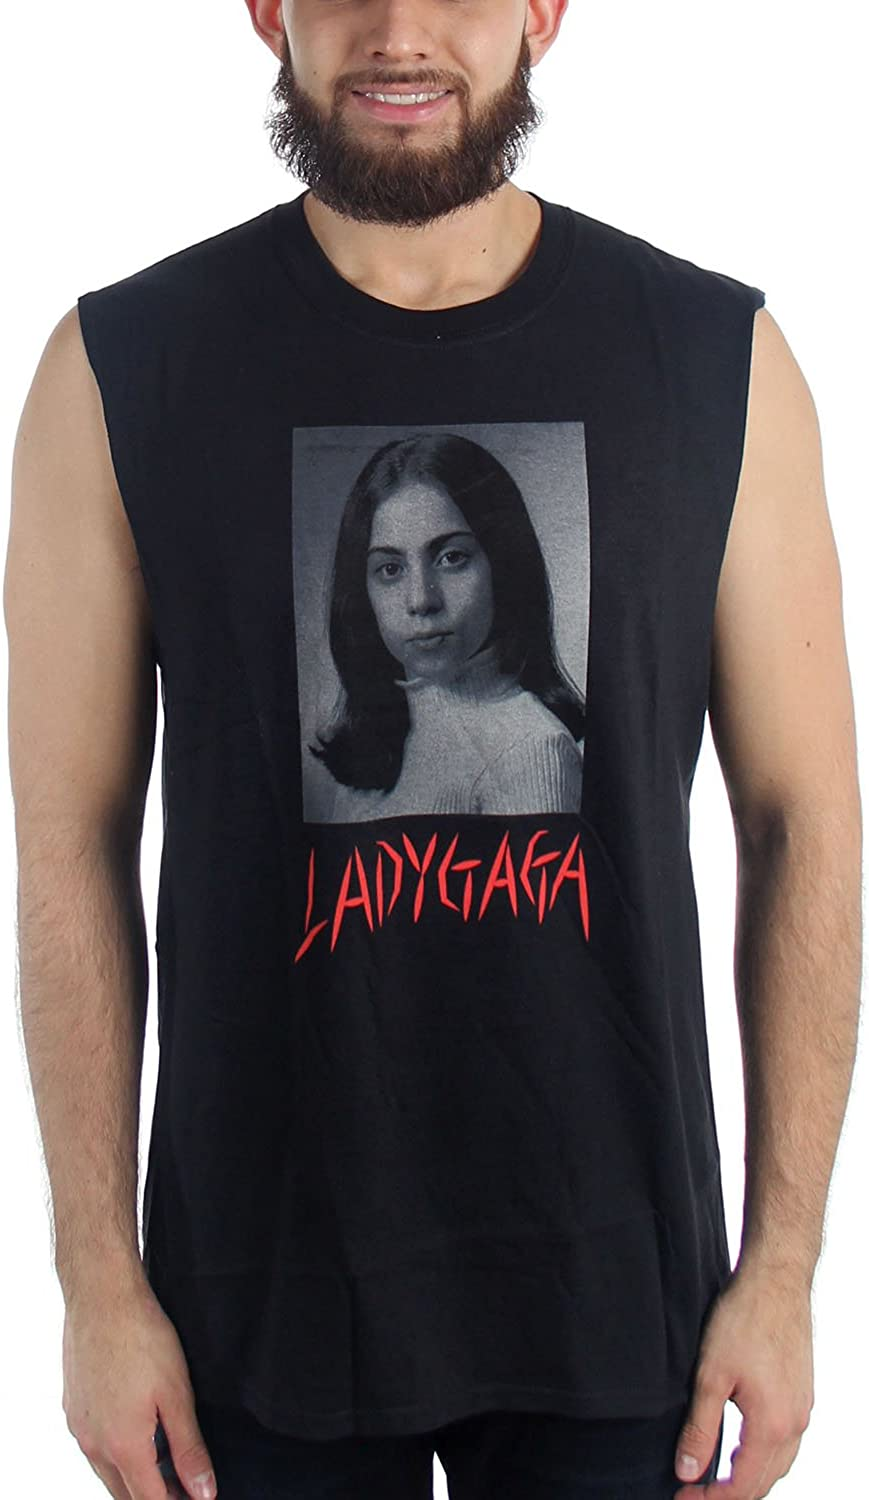 Lady Gaga School Photo Joanne Black Tank Muscle T Shirt New Official